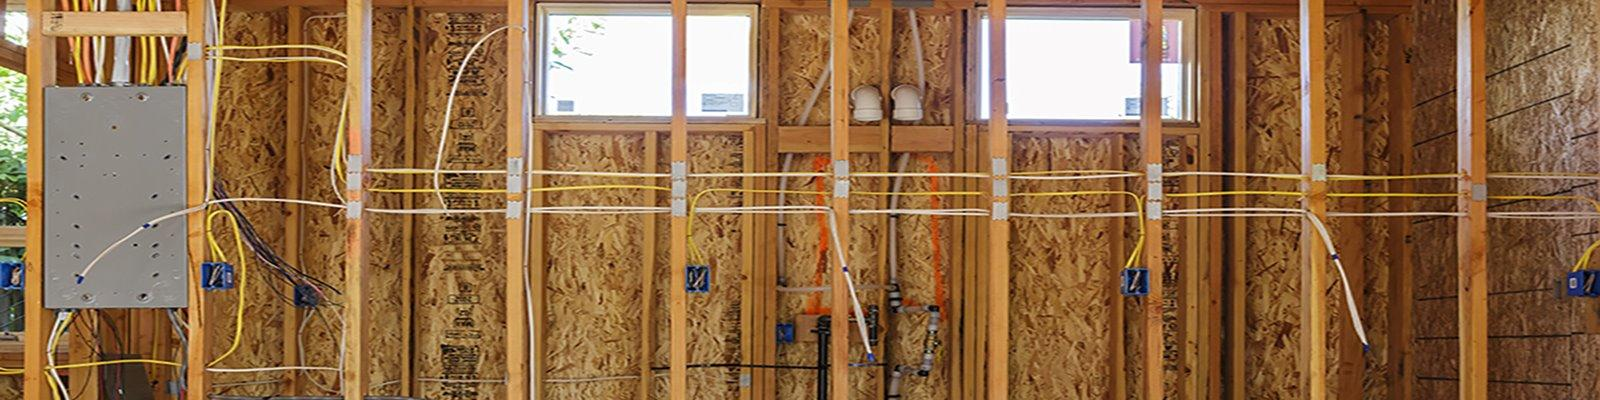 commercial wiring rough in electrical  mechanical and plumbing permits city of bellevue  mechanical and plumbing permits